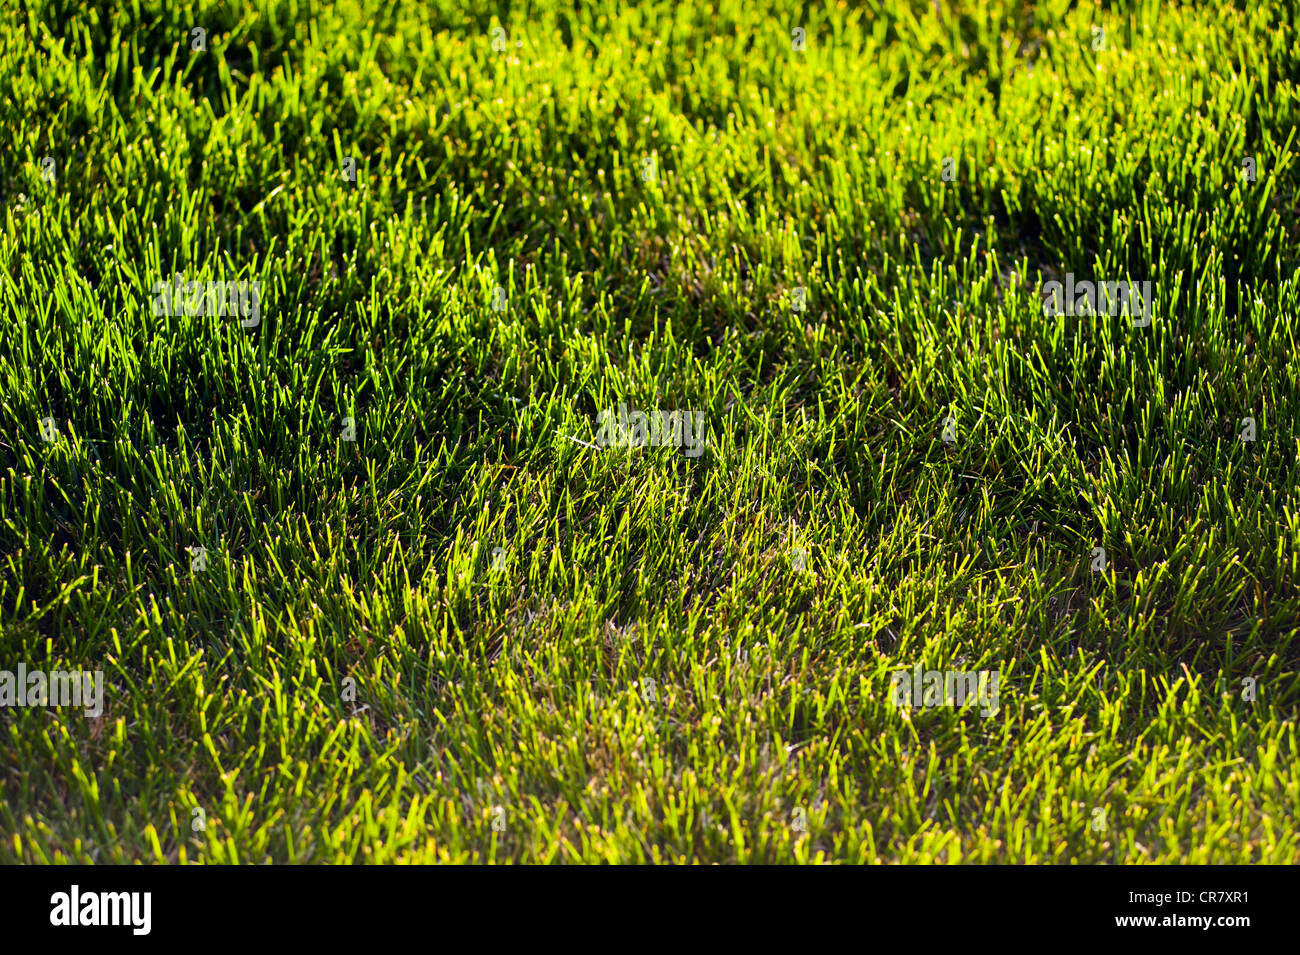 Backlit grass in the garden of a suburban home at sunset - Stock Image